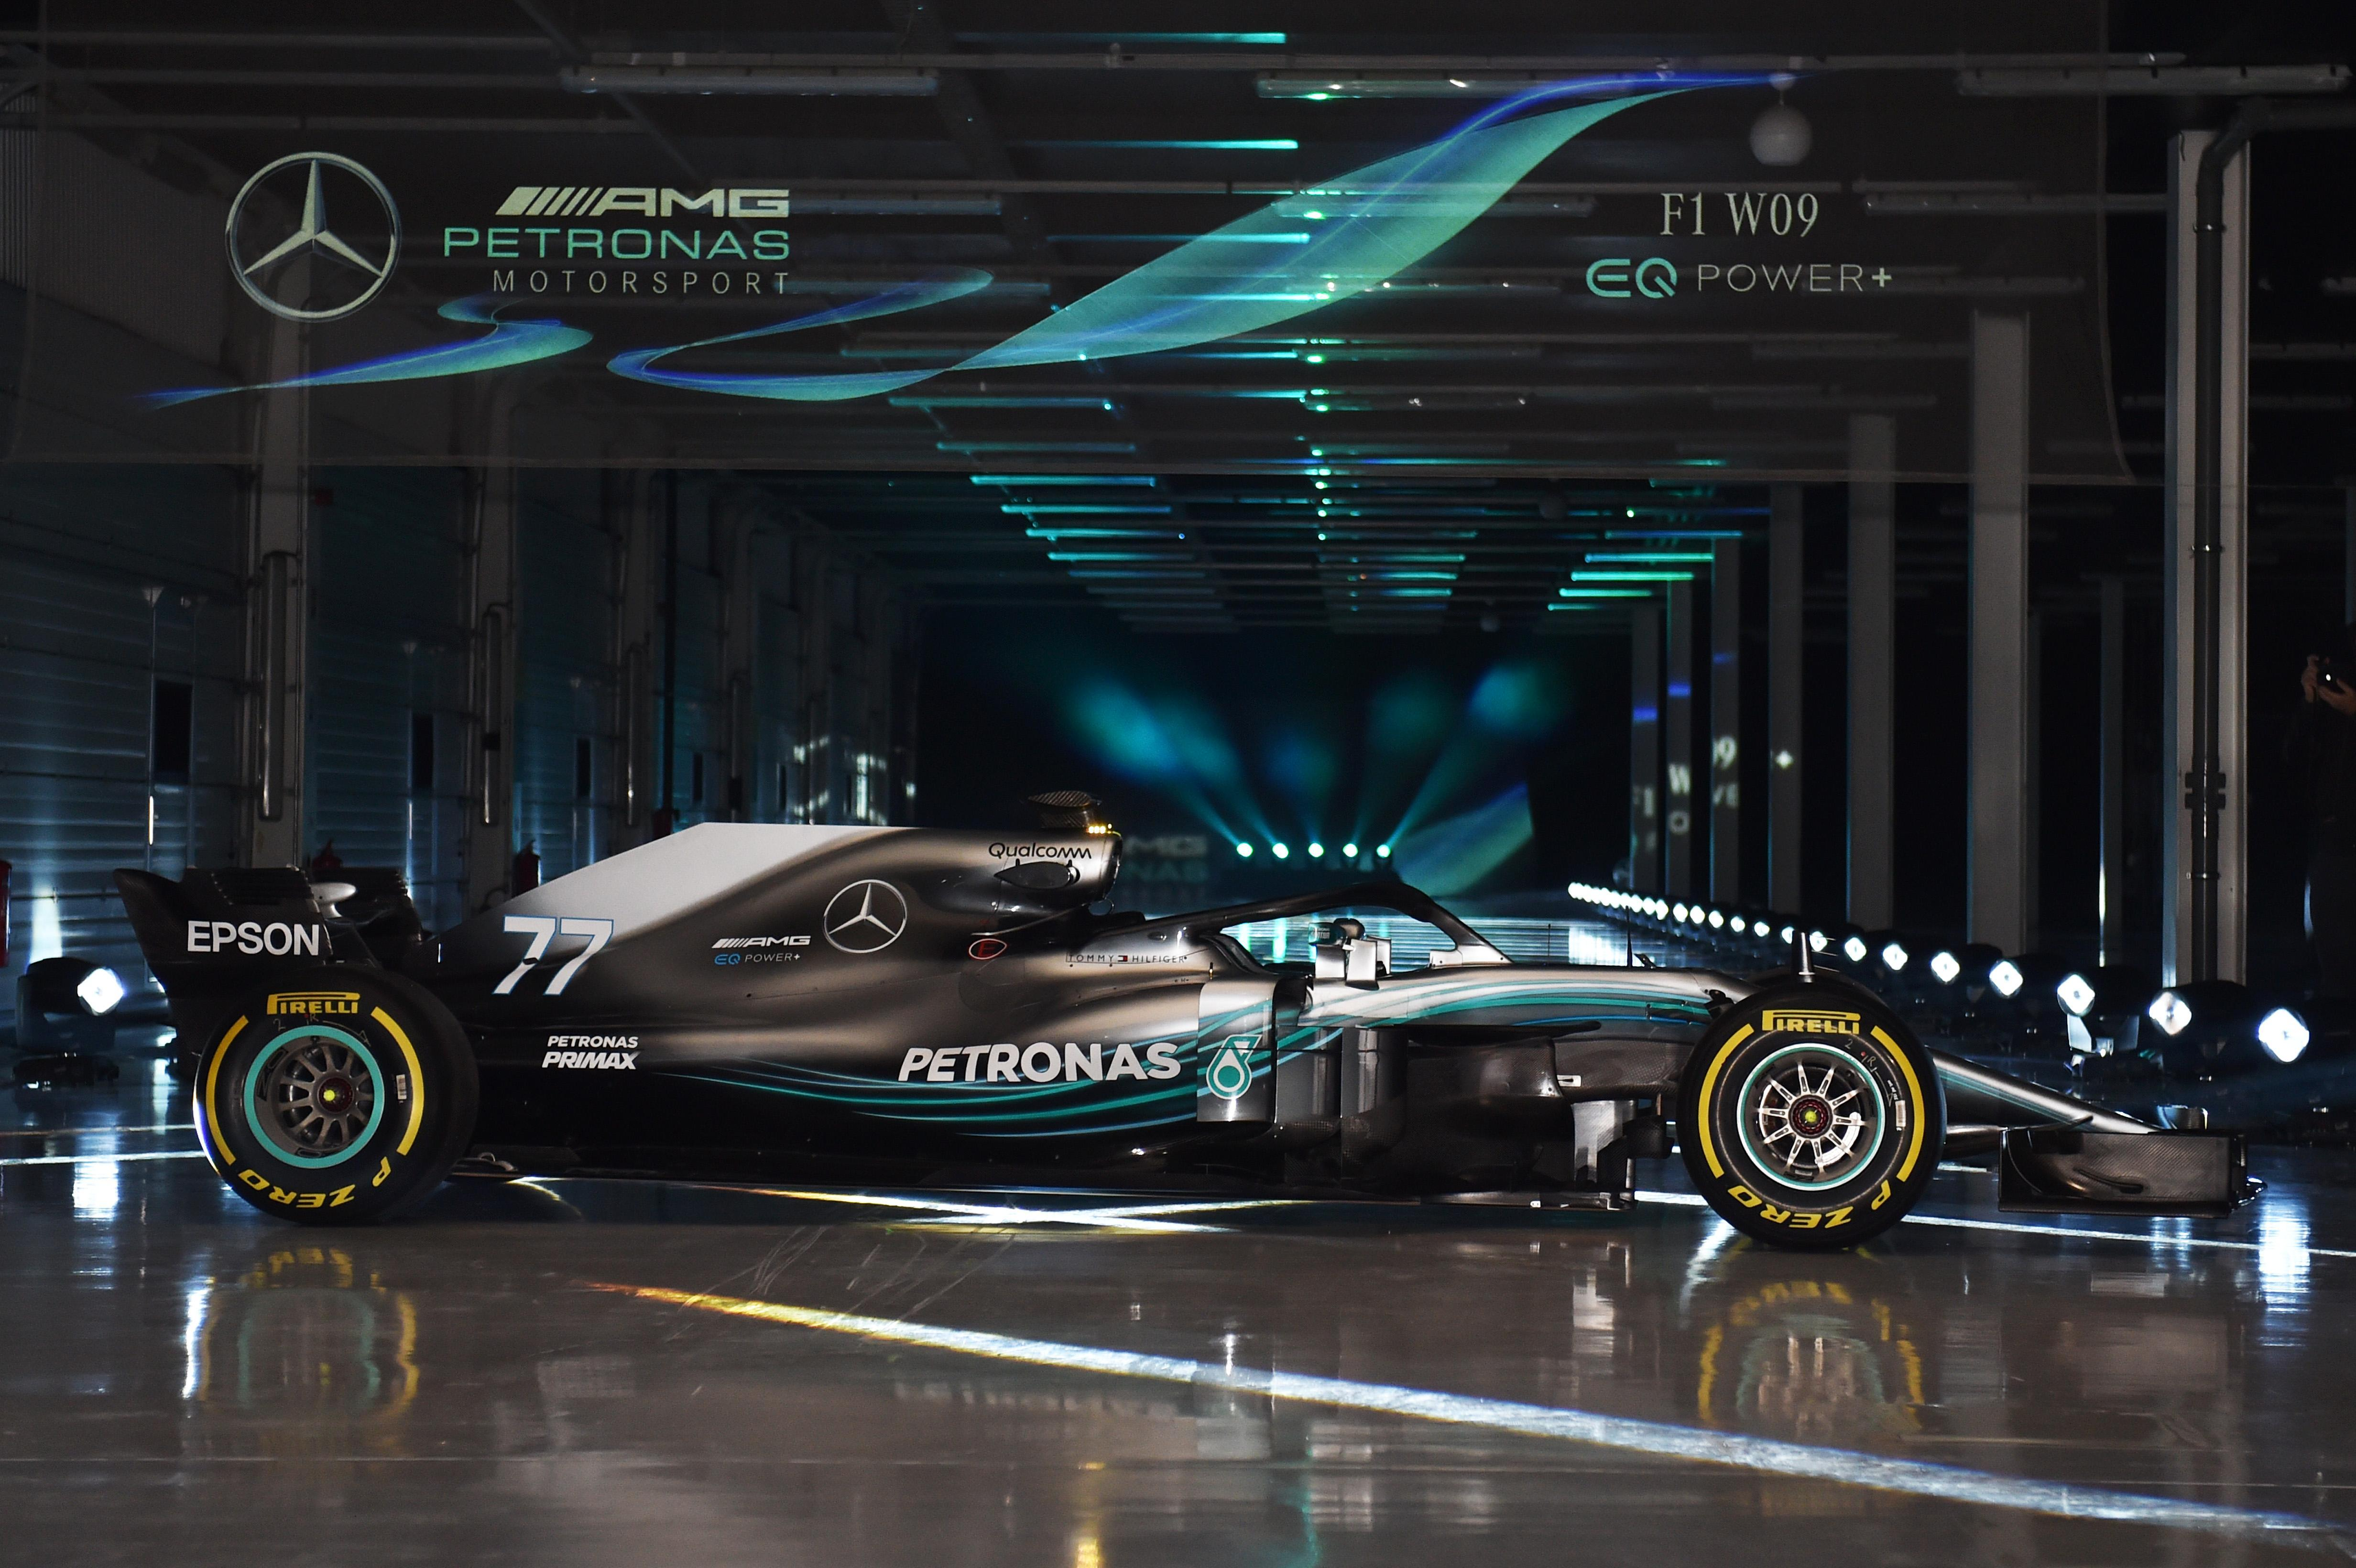 Mercedes F1 Wallpapers   Top Mercedes F1 Backgrounds 4928x3280